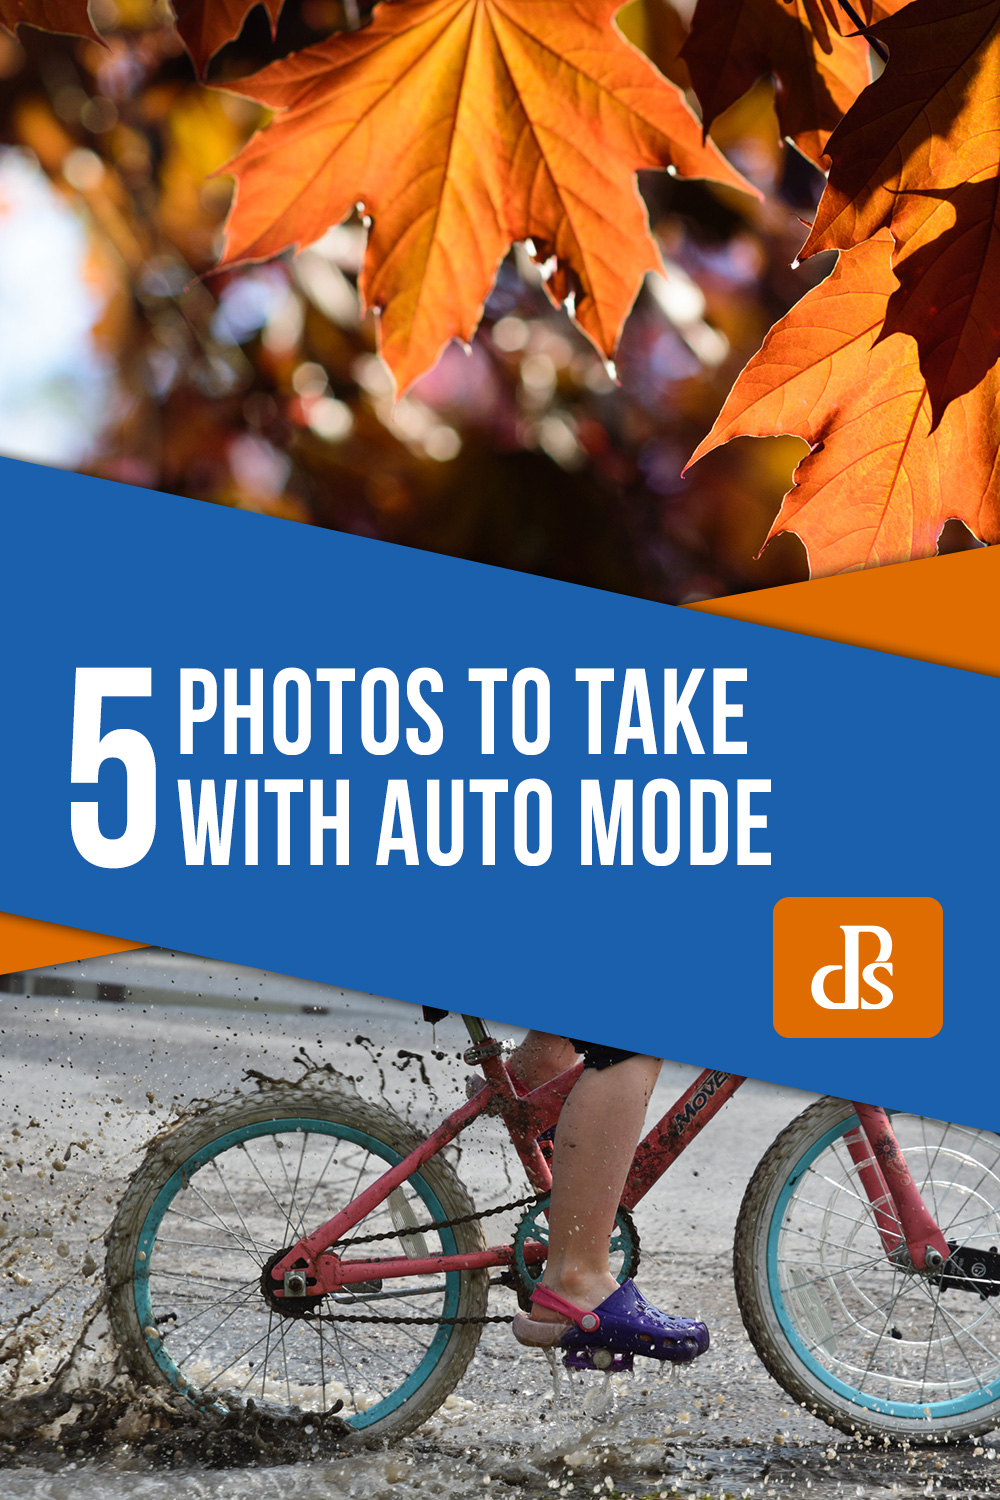 photos-to-take-with-auto-mode